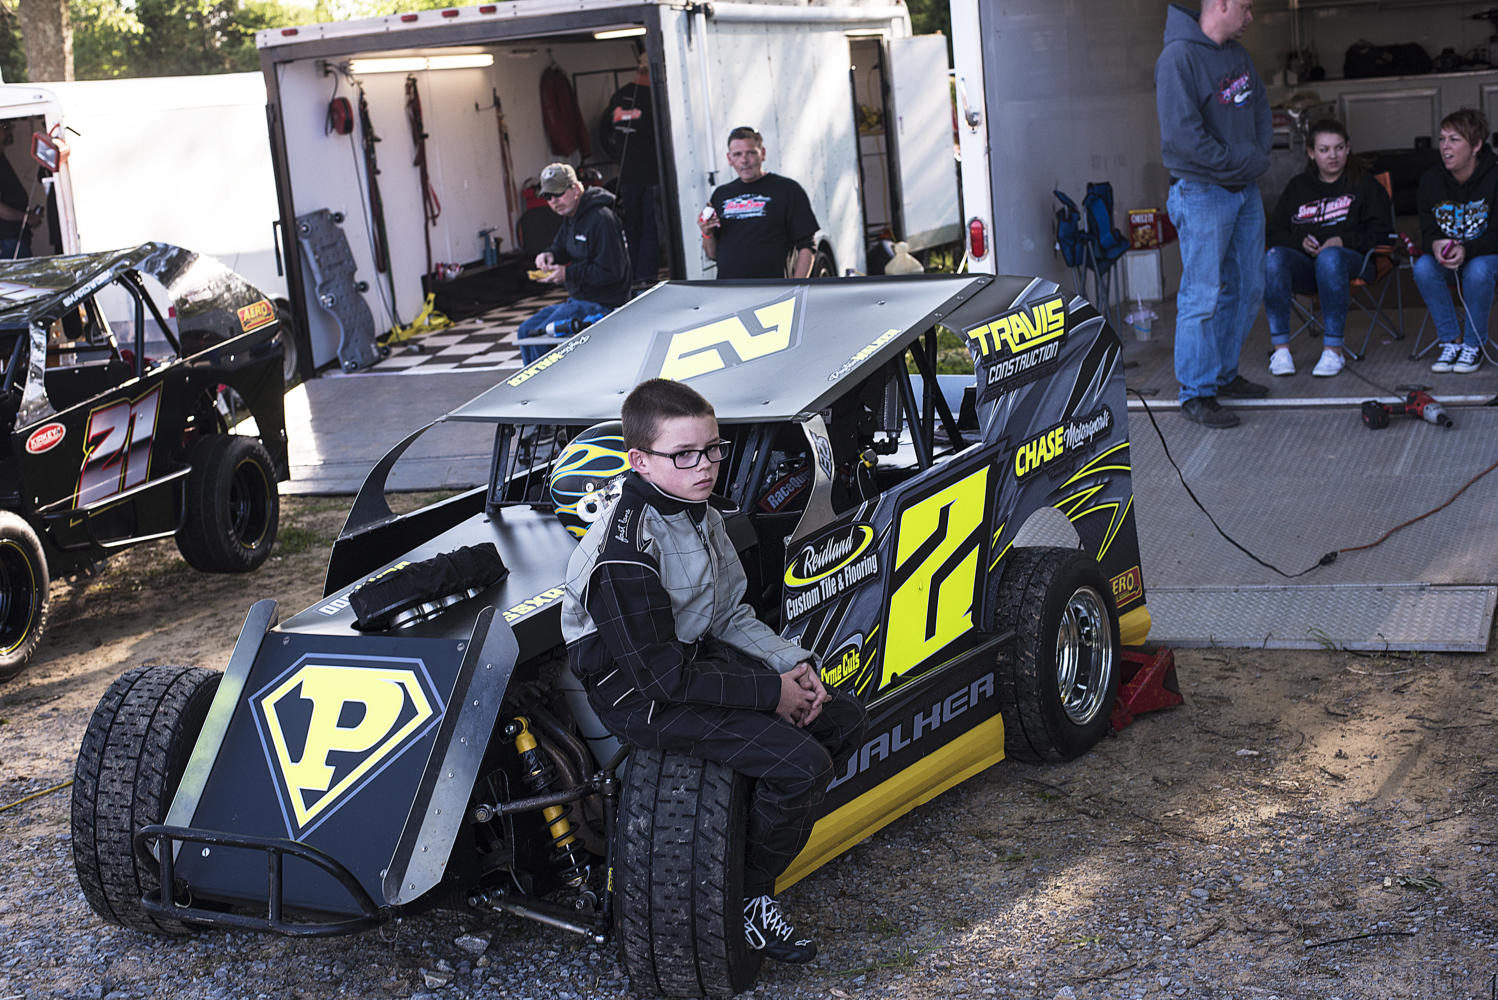 Second-generation+racer+Peyton+Walker%2C+12%2C+of+Paducah%2C+Kentucky%2C+sits+on+his+car+awaiting+the+start+of+hot-laps+Saturday%2C+May+6%2C+2017%2C+at+the+Southern+Illinois+Raceway+in+Marion.+%22I+like+to+go+fast%2C%22+Walker+said.+West+Frankfort+resident+Kevin+Russell%2C+a+second-generation+racer+and+father+of+sportsman+class+series+feature+race+winner+Matthew+Russell+also+attended+the+event.+%E2%80%9C%5BWe%5D+enjoy+the+competition+of+it%2C%E2%80%9D+Russell+said.+%E2%80%9CIt+brings+the+family+together+%E2%80%A6+teaches+the+kids+a+lot.%E2%80%9D+%28William+Cooley+%7C+%40Wcooley1980%29%0A%0A+